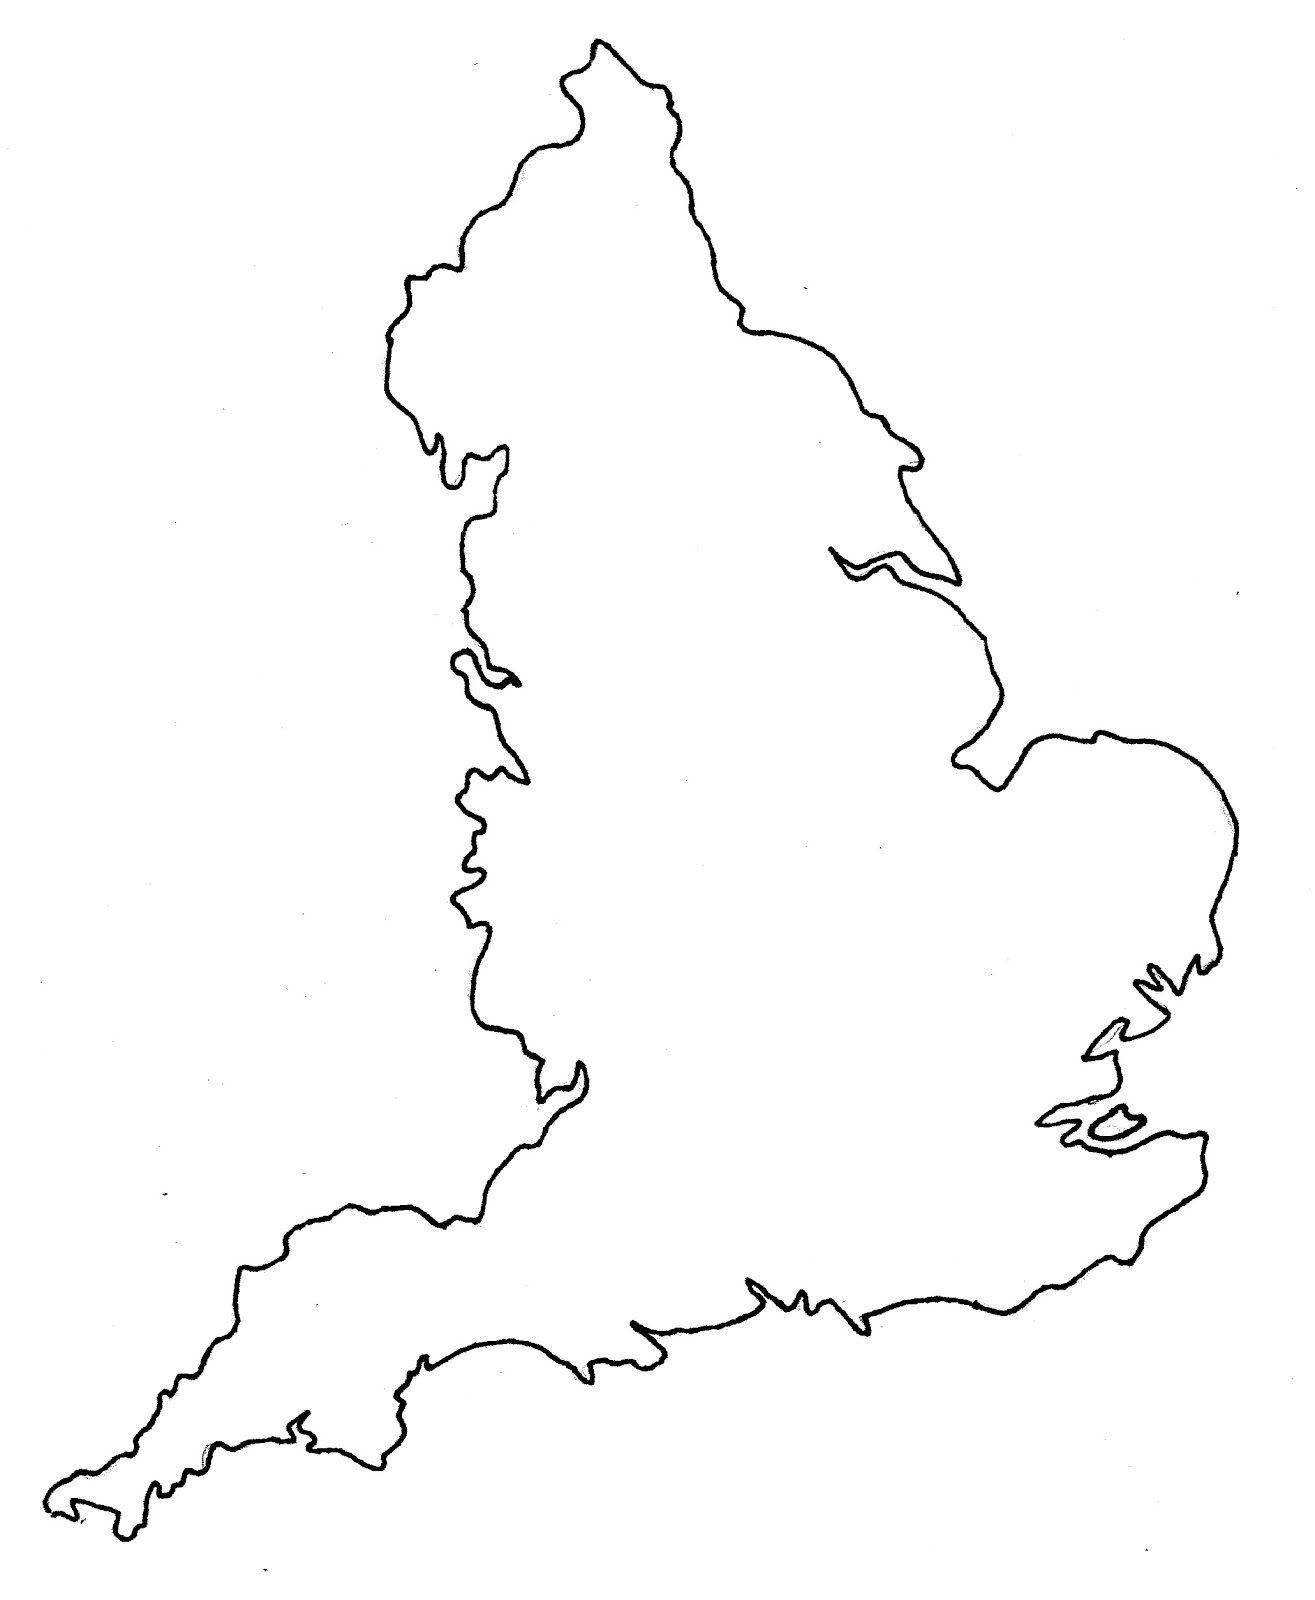 Map Of England Template.The Best Free England Drawing Images Download From 318 Free